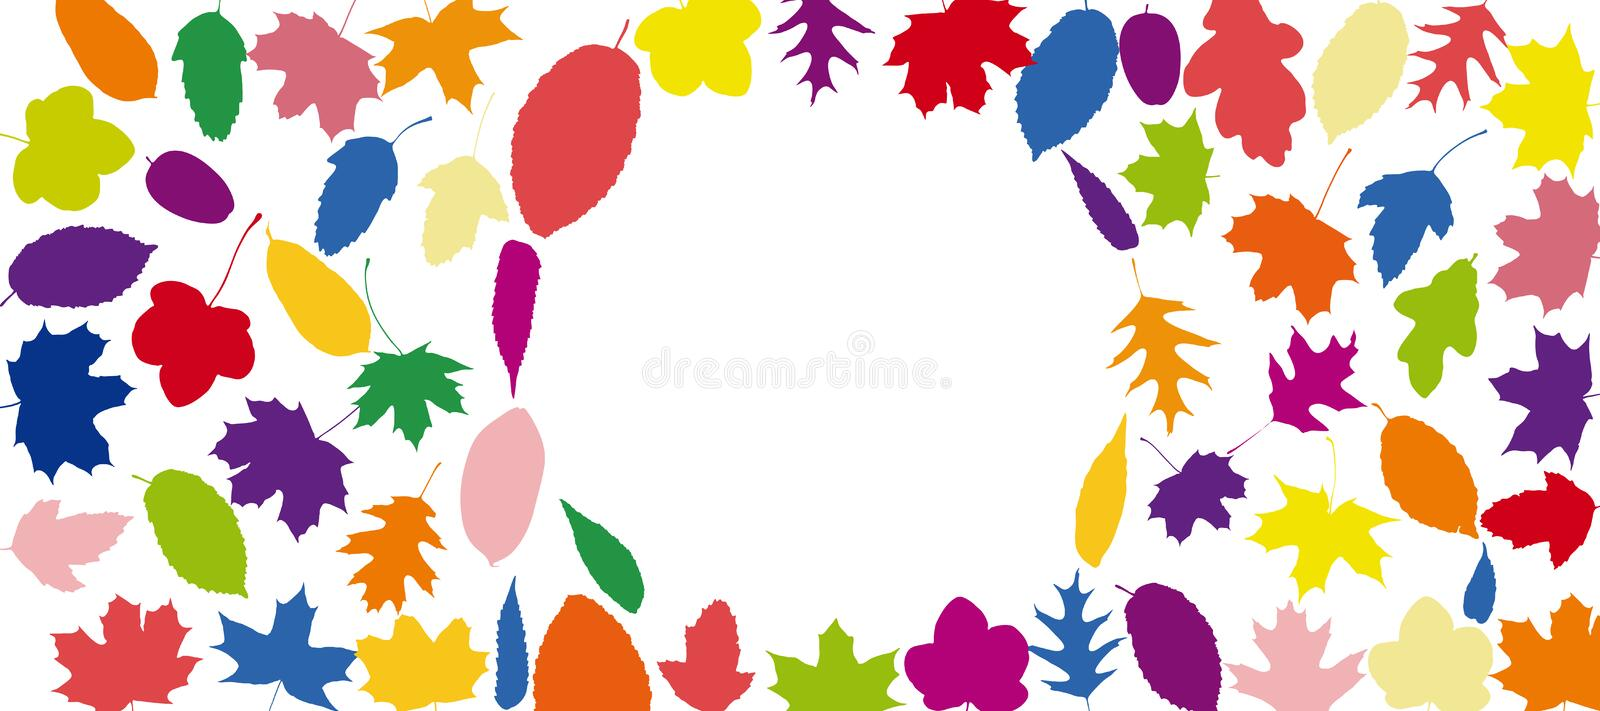 Background with many colorful autumn leaves stock illustration